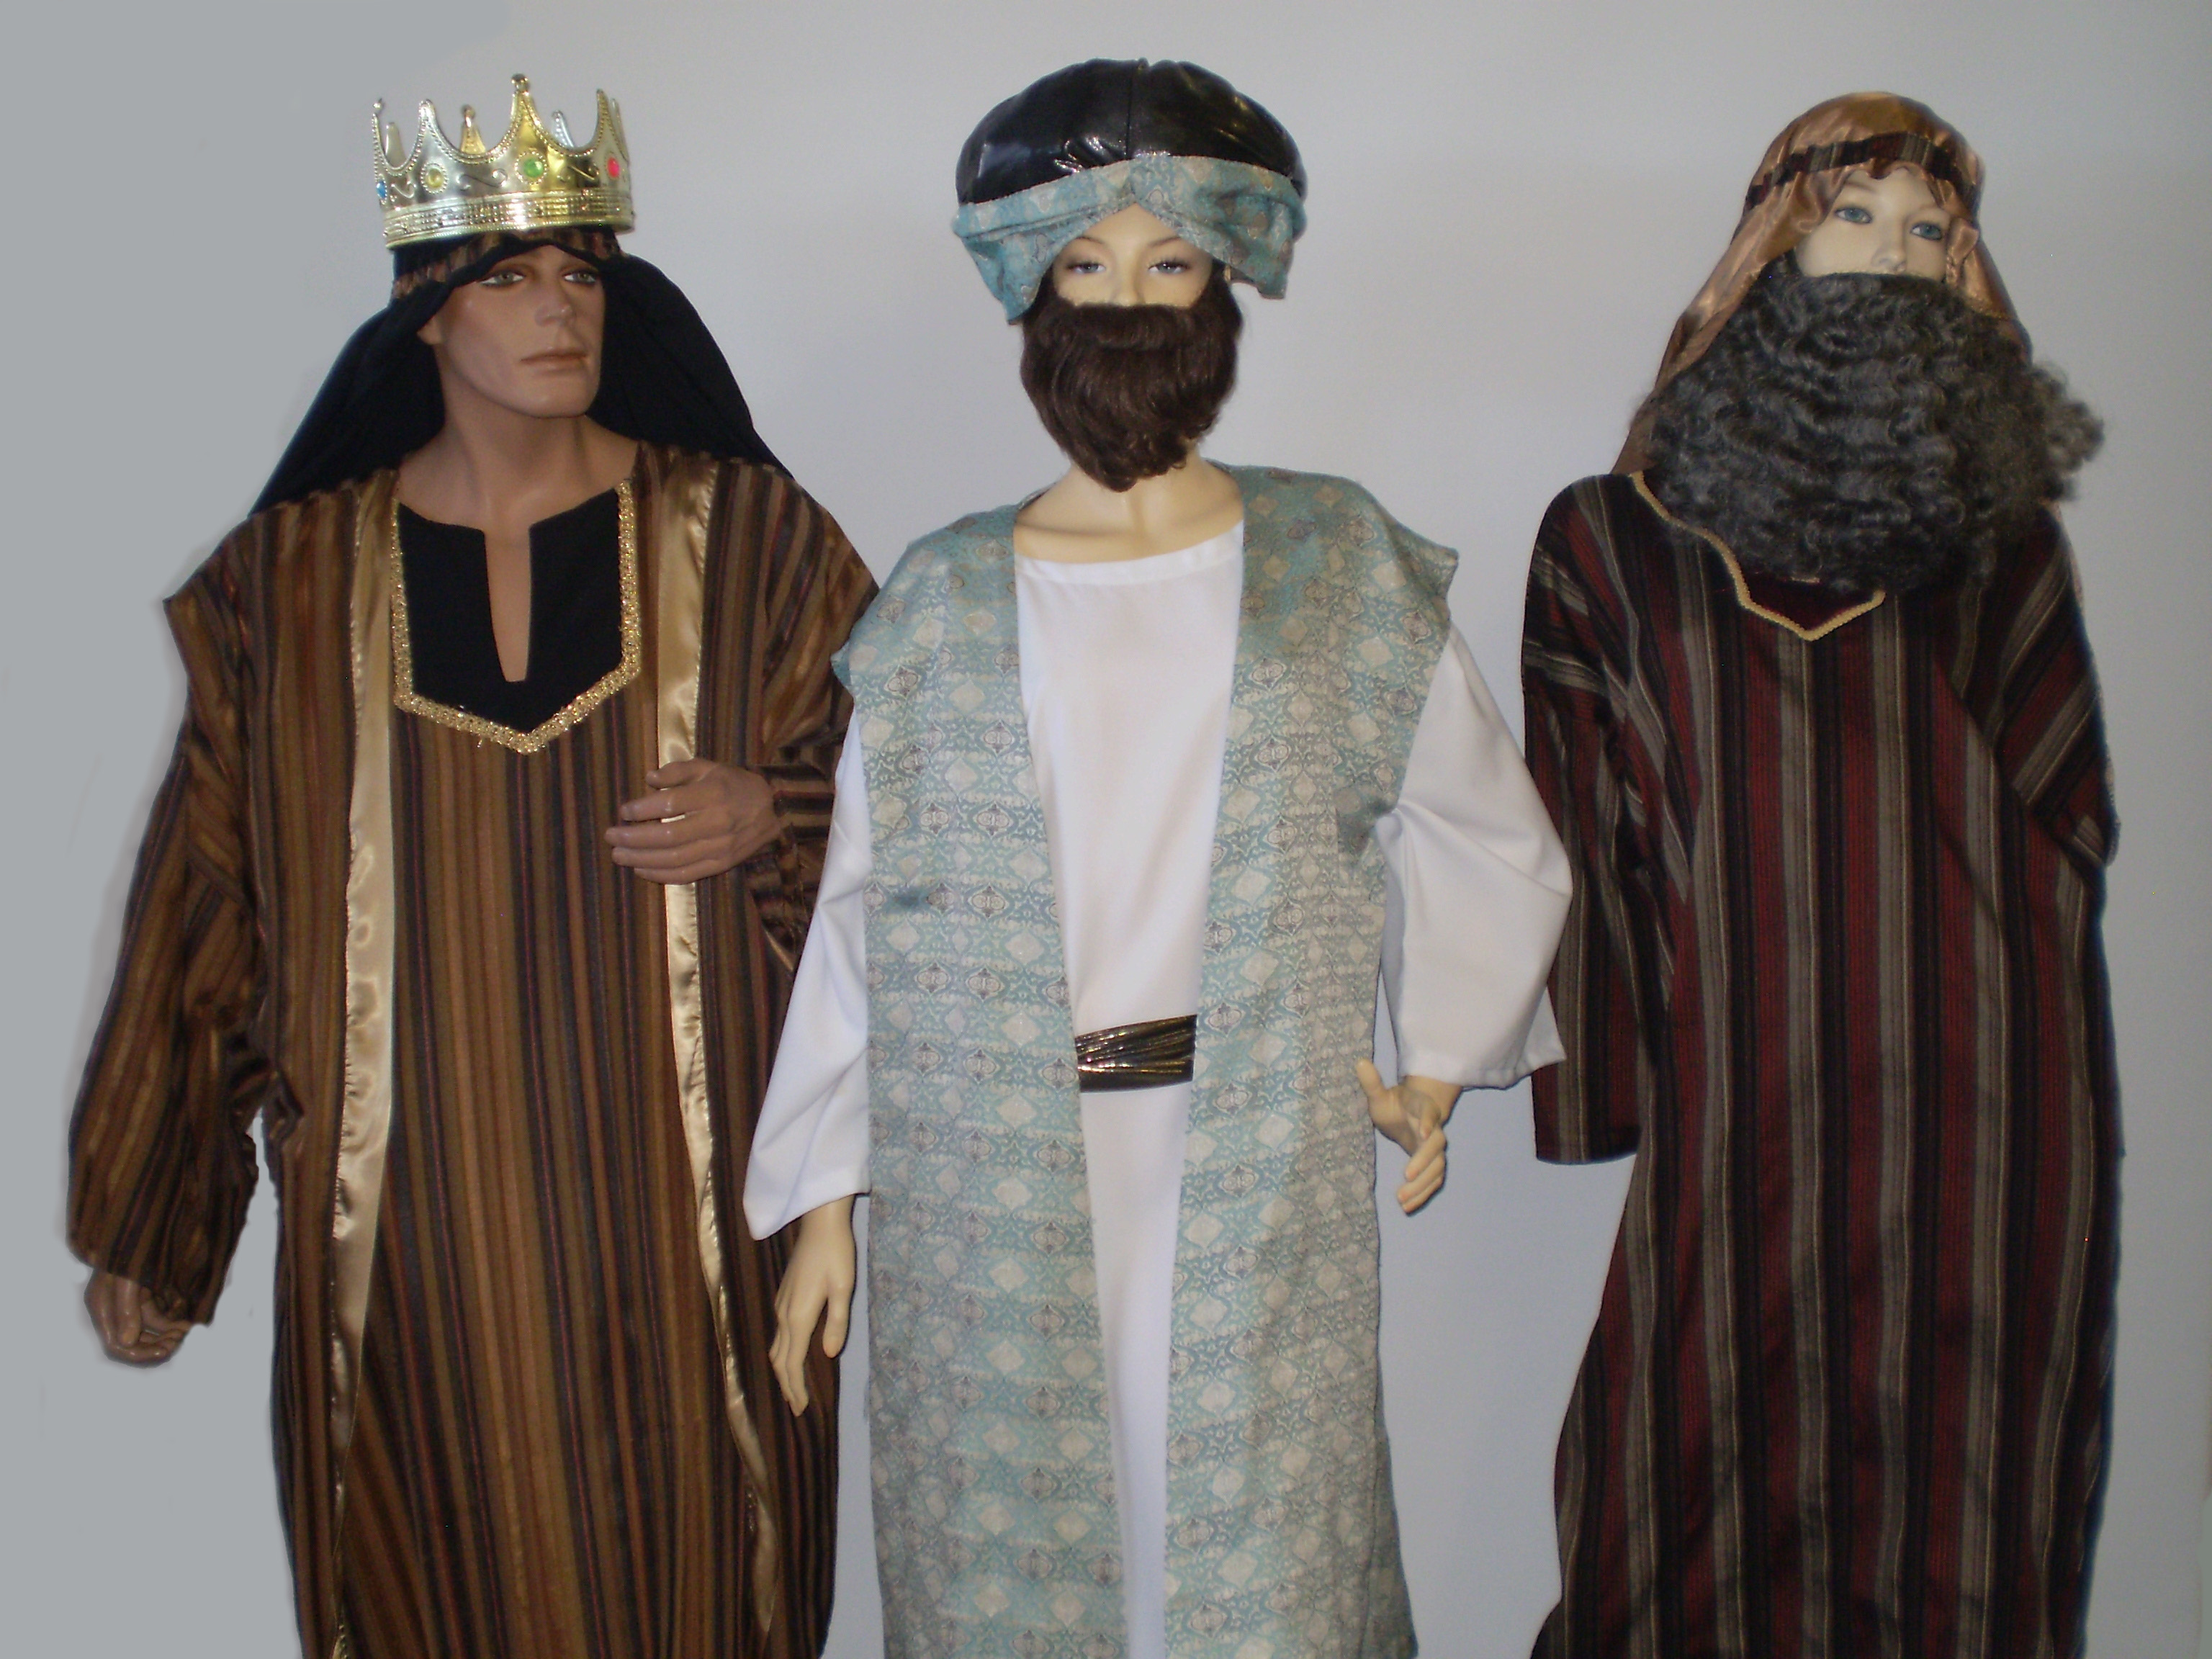 Biblical costumes, Passion play dress up or Nativity scene